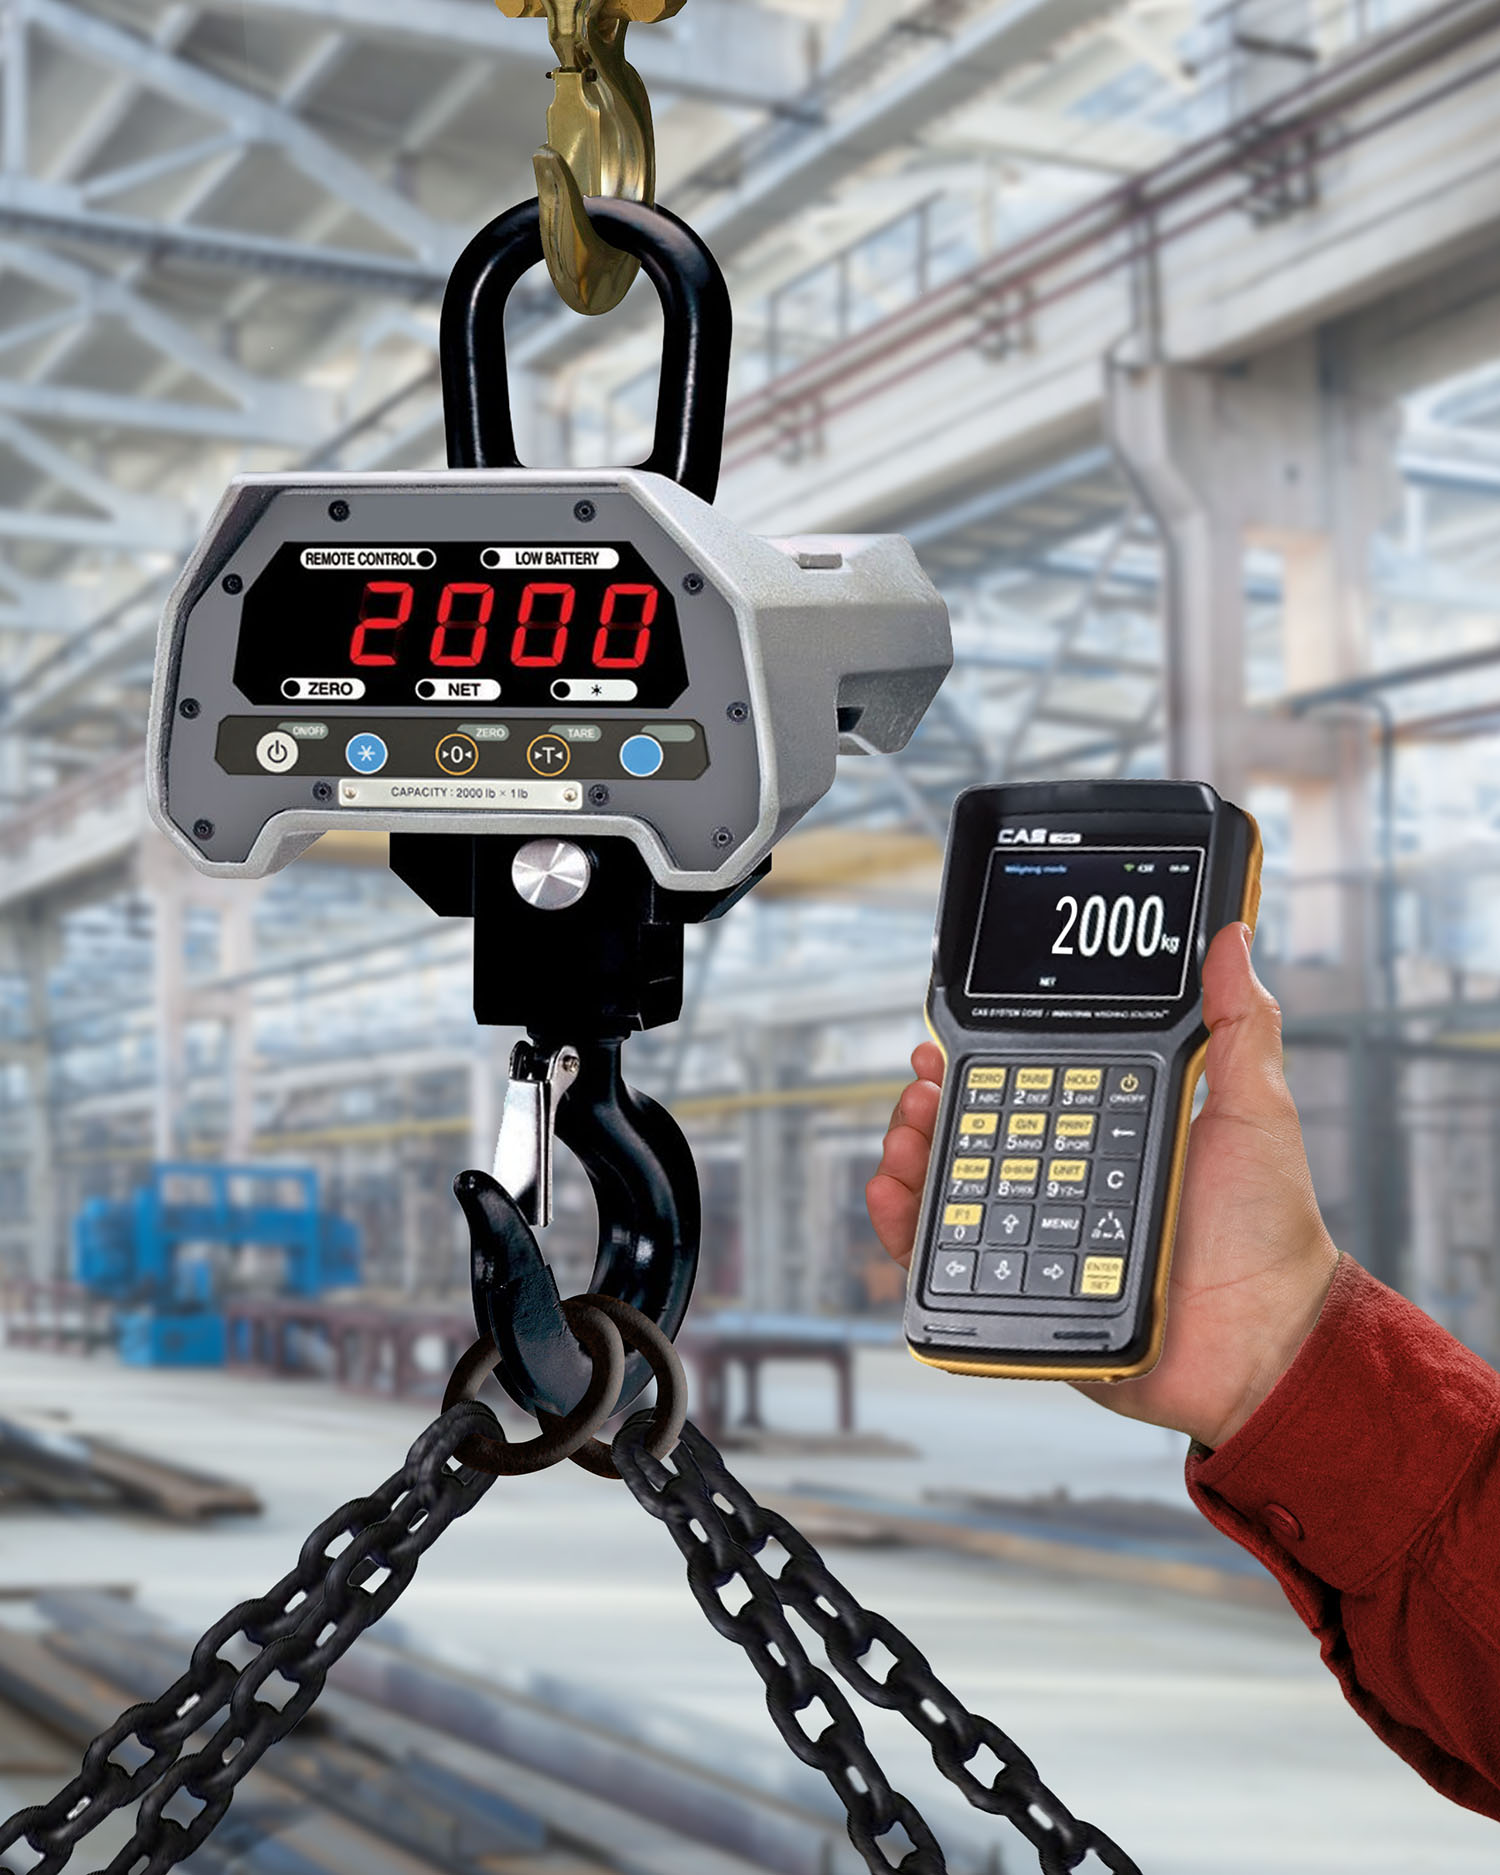 INDUSTRIAL CRANE SCALE FEATURES BLUETOOTH HANDHELD INDICATOR